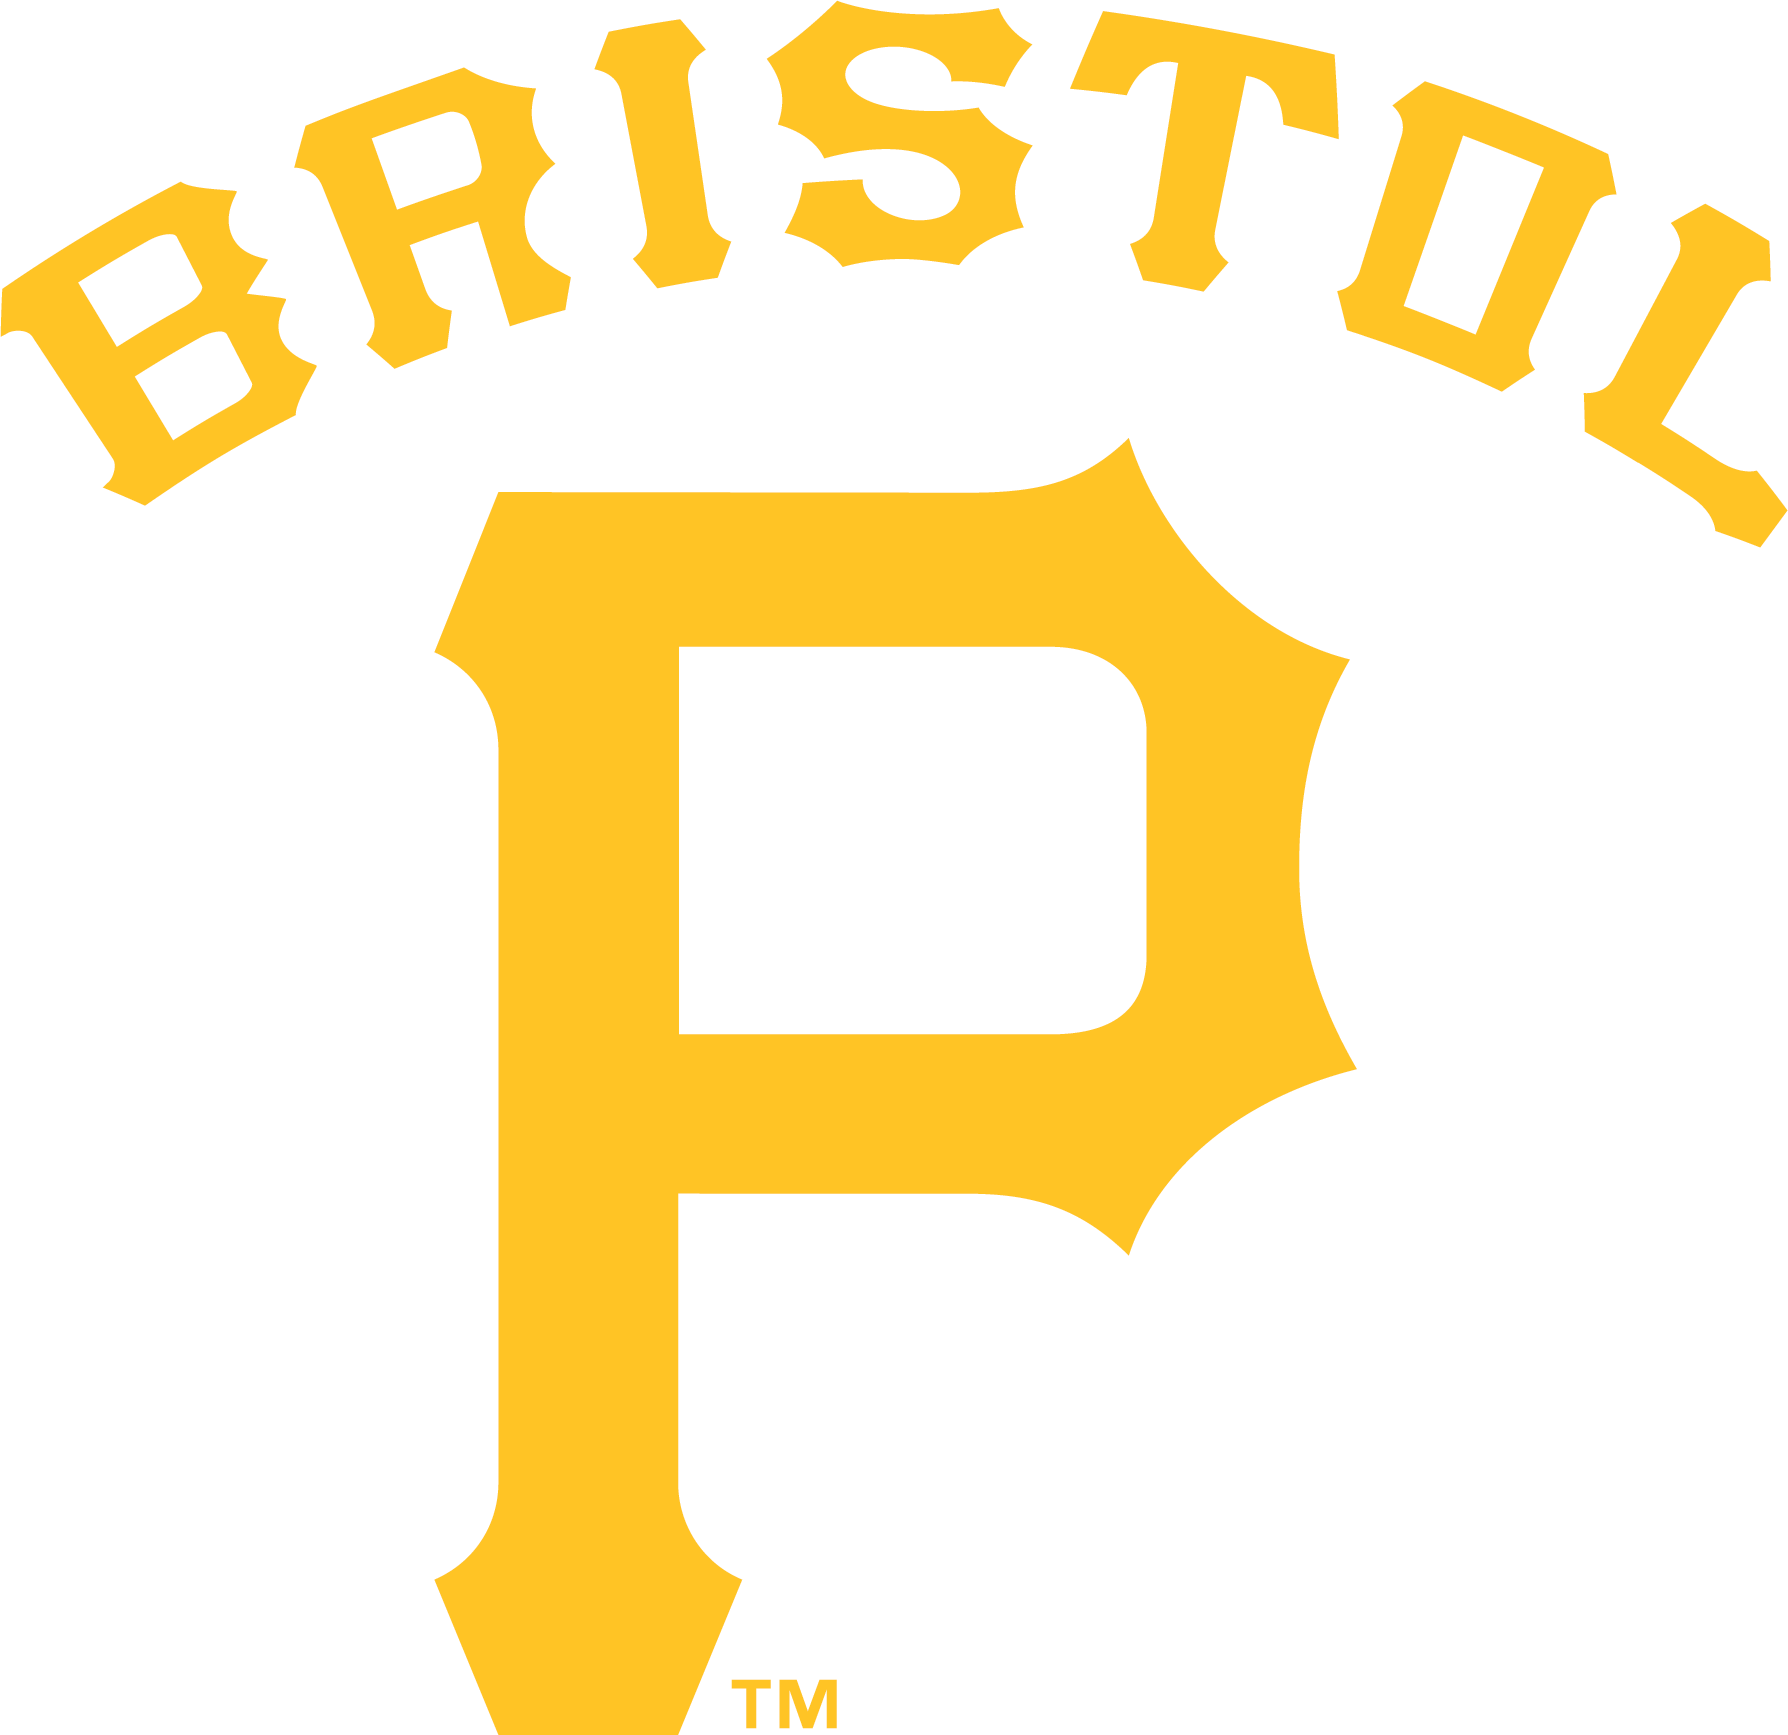 Bristol Pirates Logo Primary Logo (2014-2020) - The yellow P logo used by the Pittsburgh Pirates (MLB affiliate) with BRISTOL arched over in the same font SportsLogos.Net